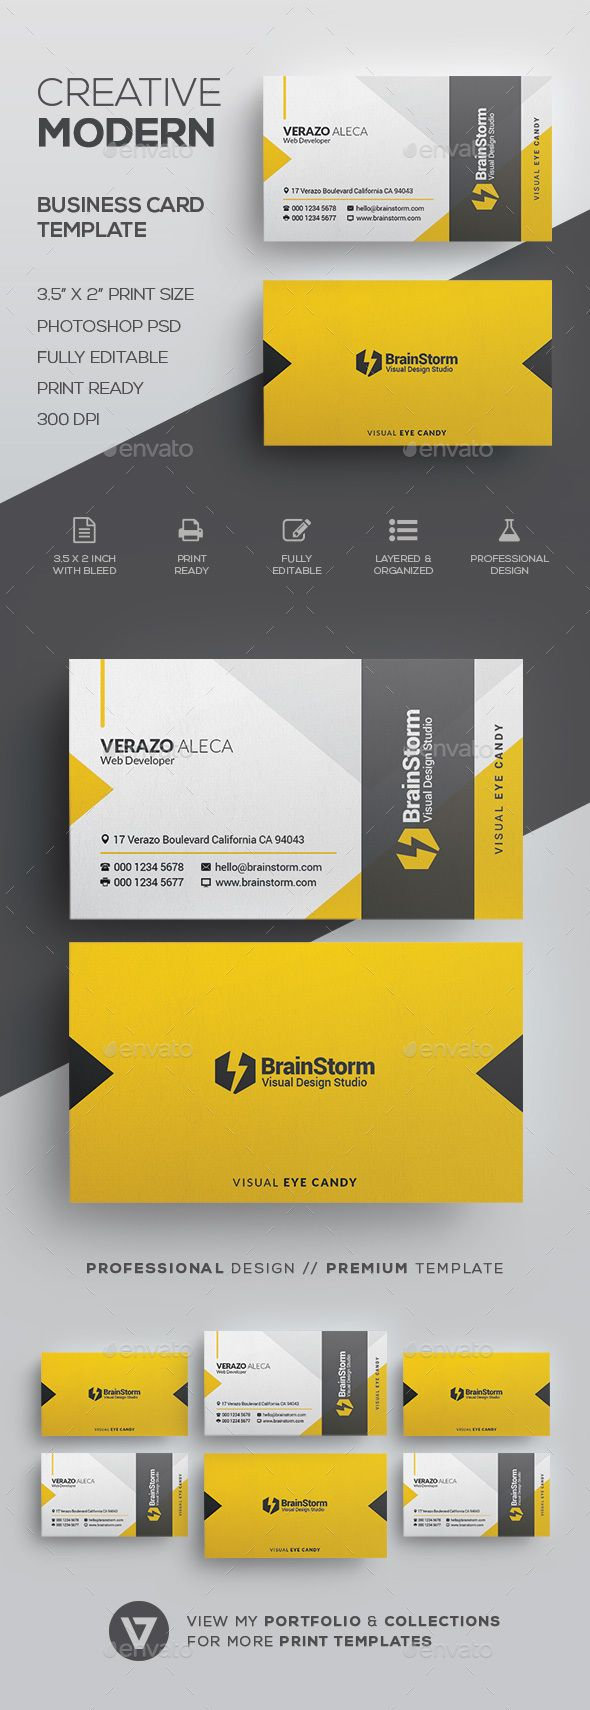 Creative Modern Business Card Template - Corporate Business Cards Download here: https://graphicriver.net/item/creative-modern-business-card-template/19854922?ref=classicdesignp